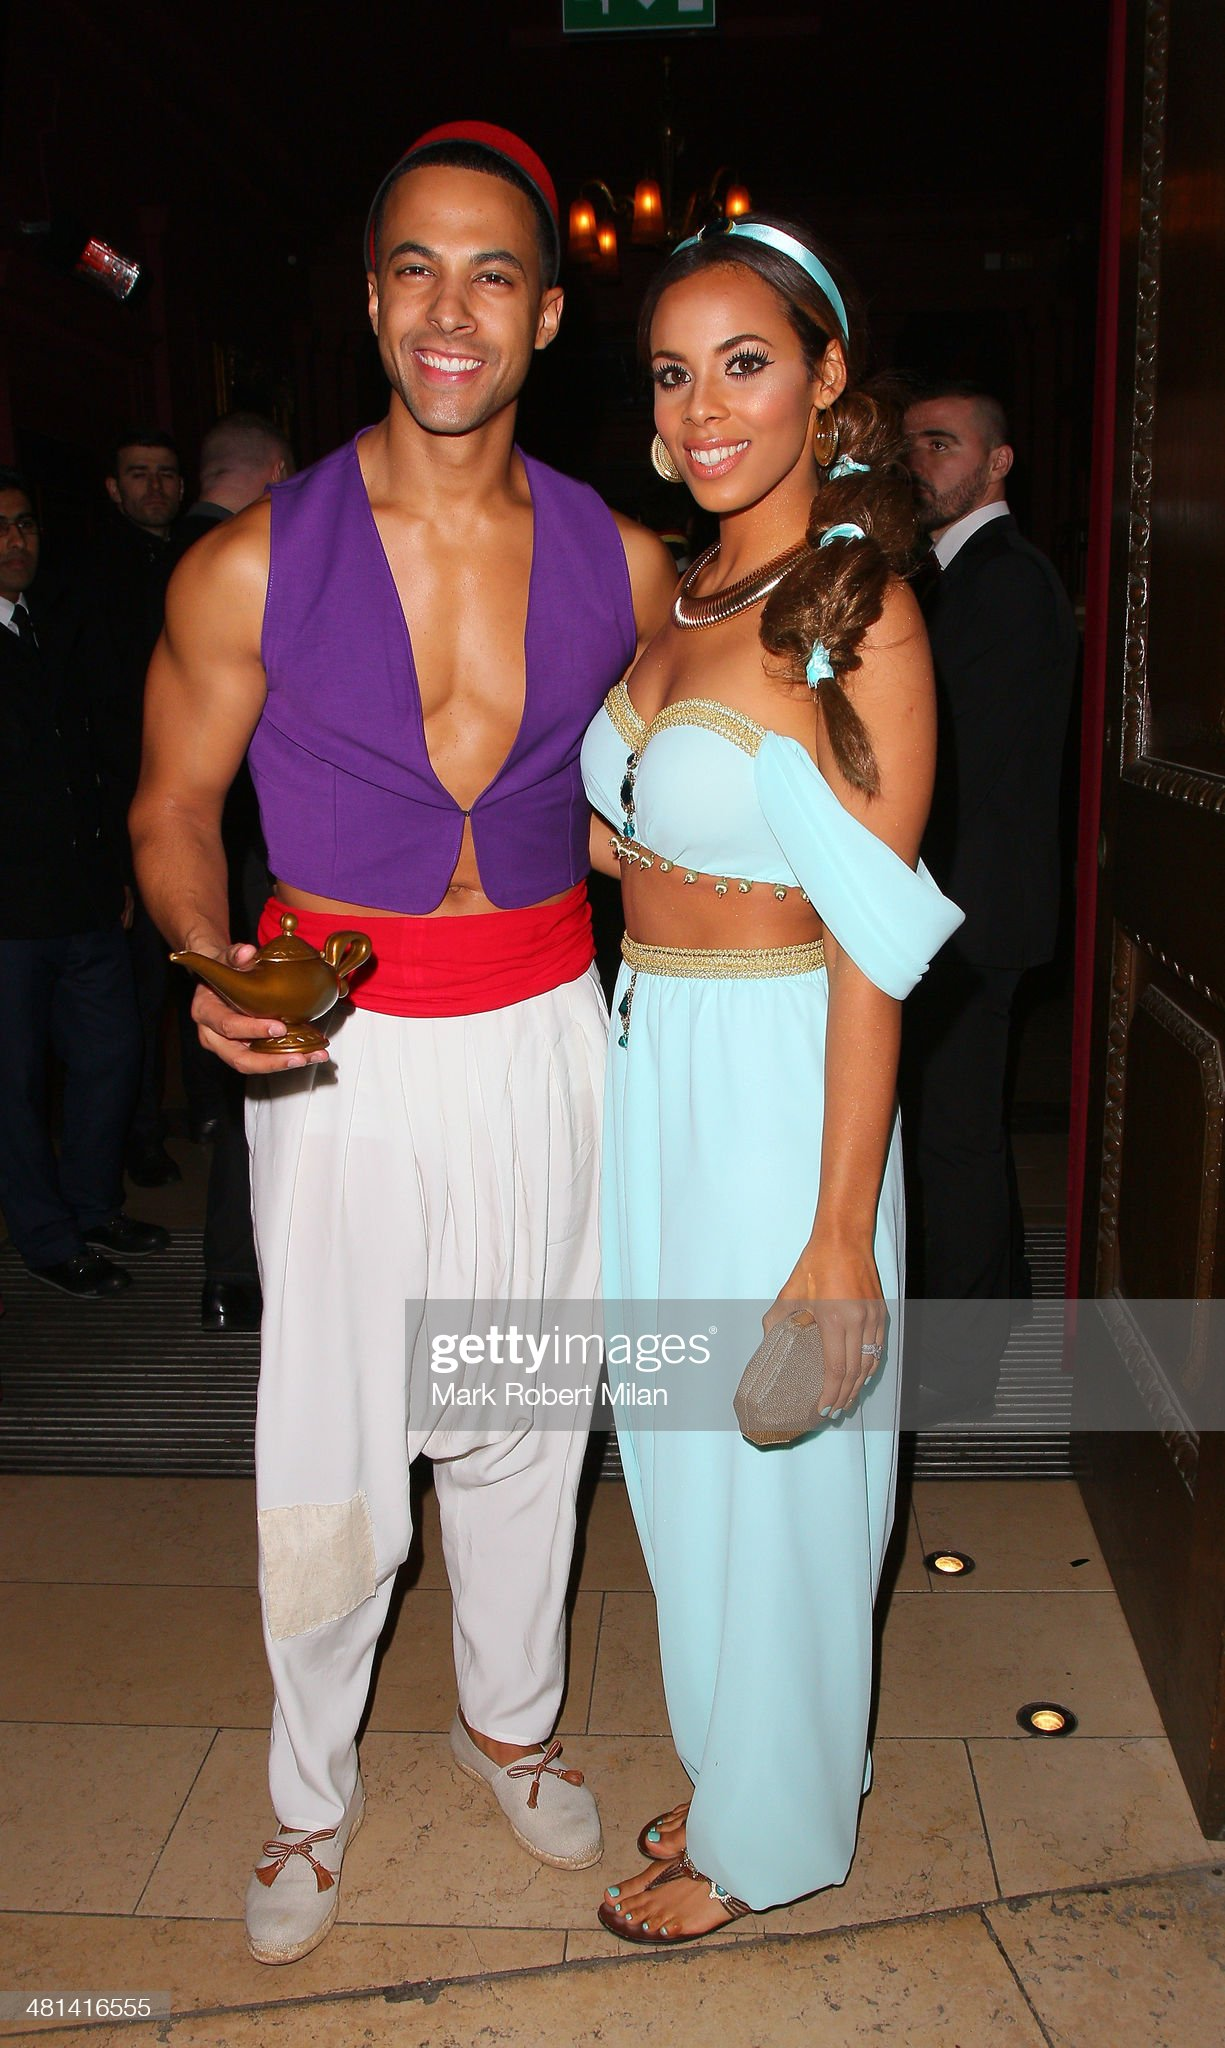 ¿Cuánto mide Rochelle Wiseman (Humes)? - Altura - Real height Marvin-humes-and-rochelle-humes-attend-rochelle-humes-disney-themed-picture-id481416555?s=2048x2048